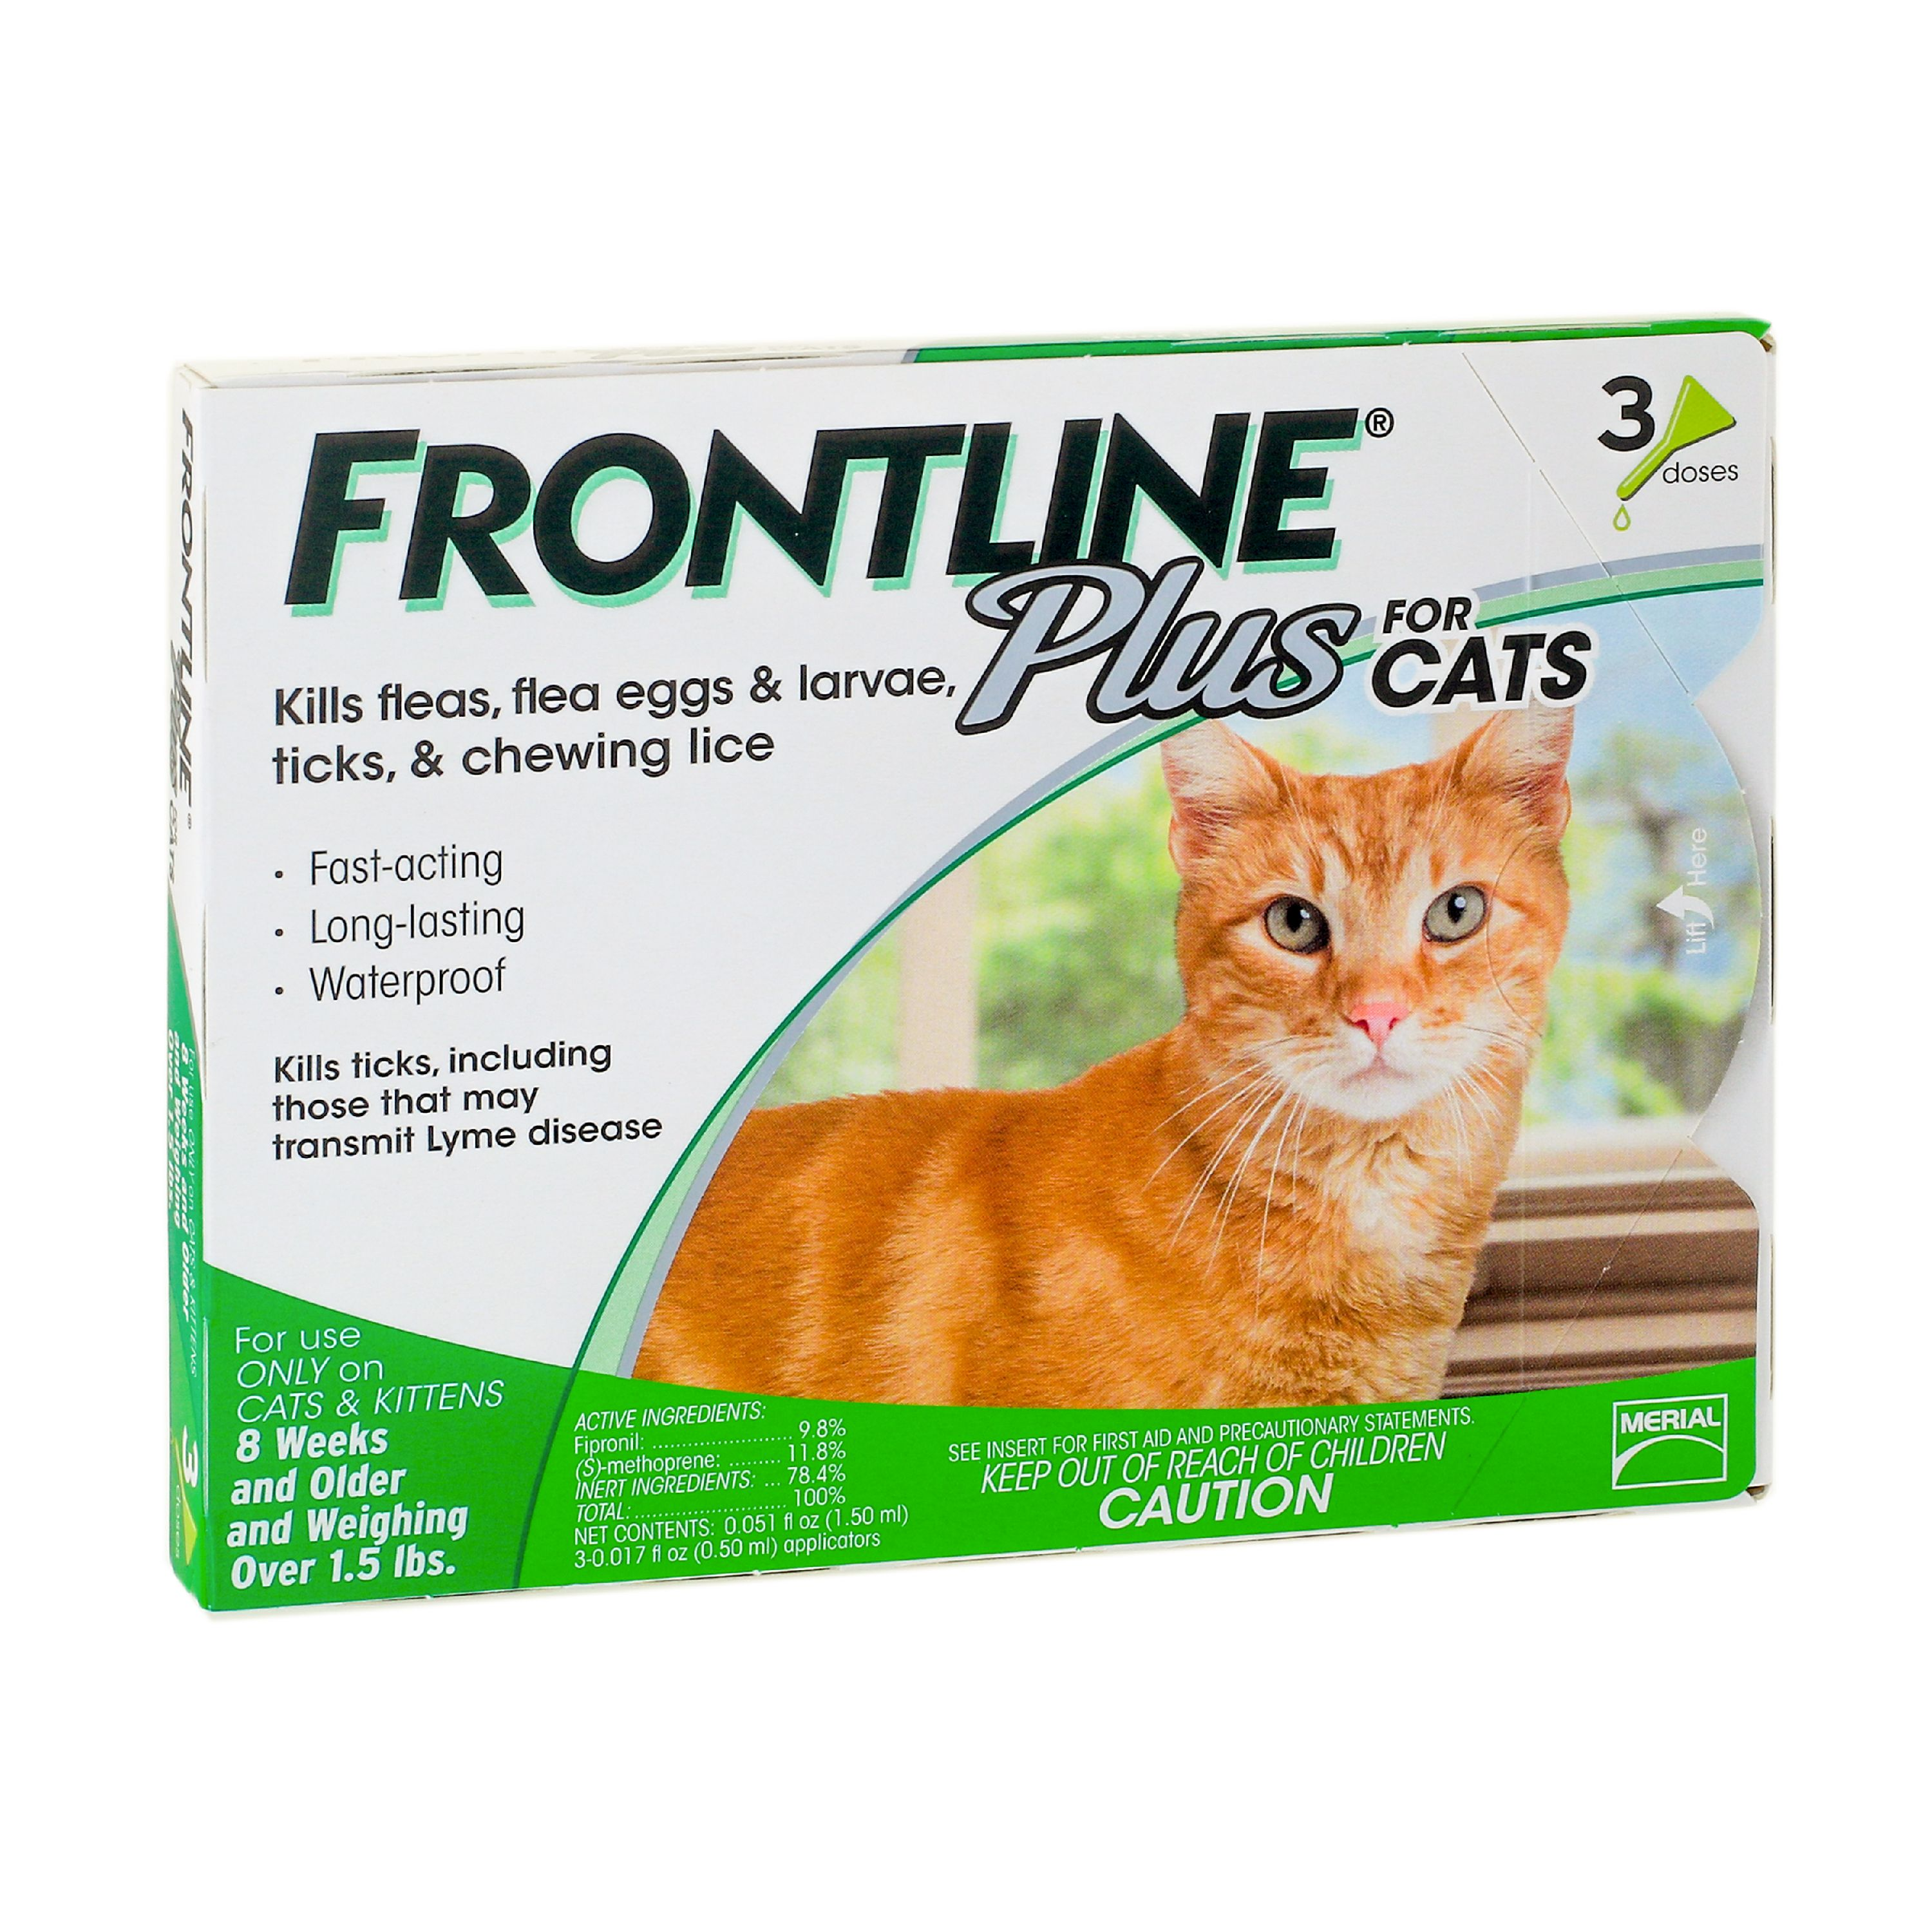 Frontline Plus Flea and Tick Prevention for Cats, 3 Monthly Treatments